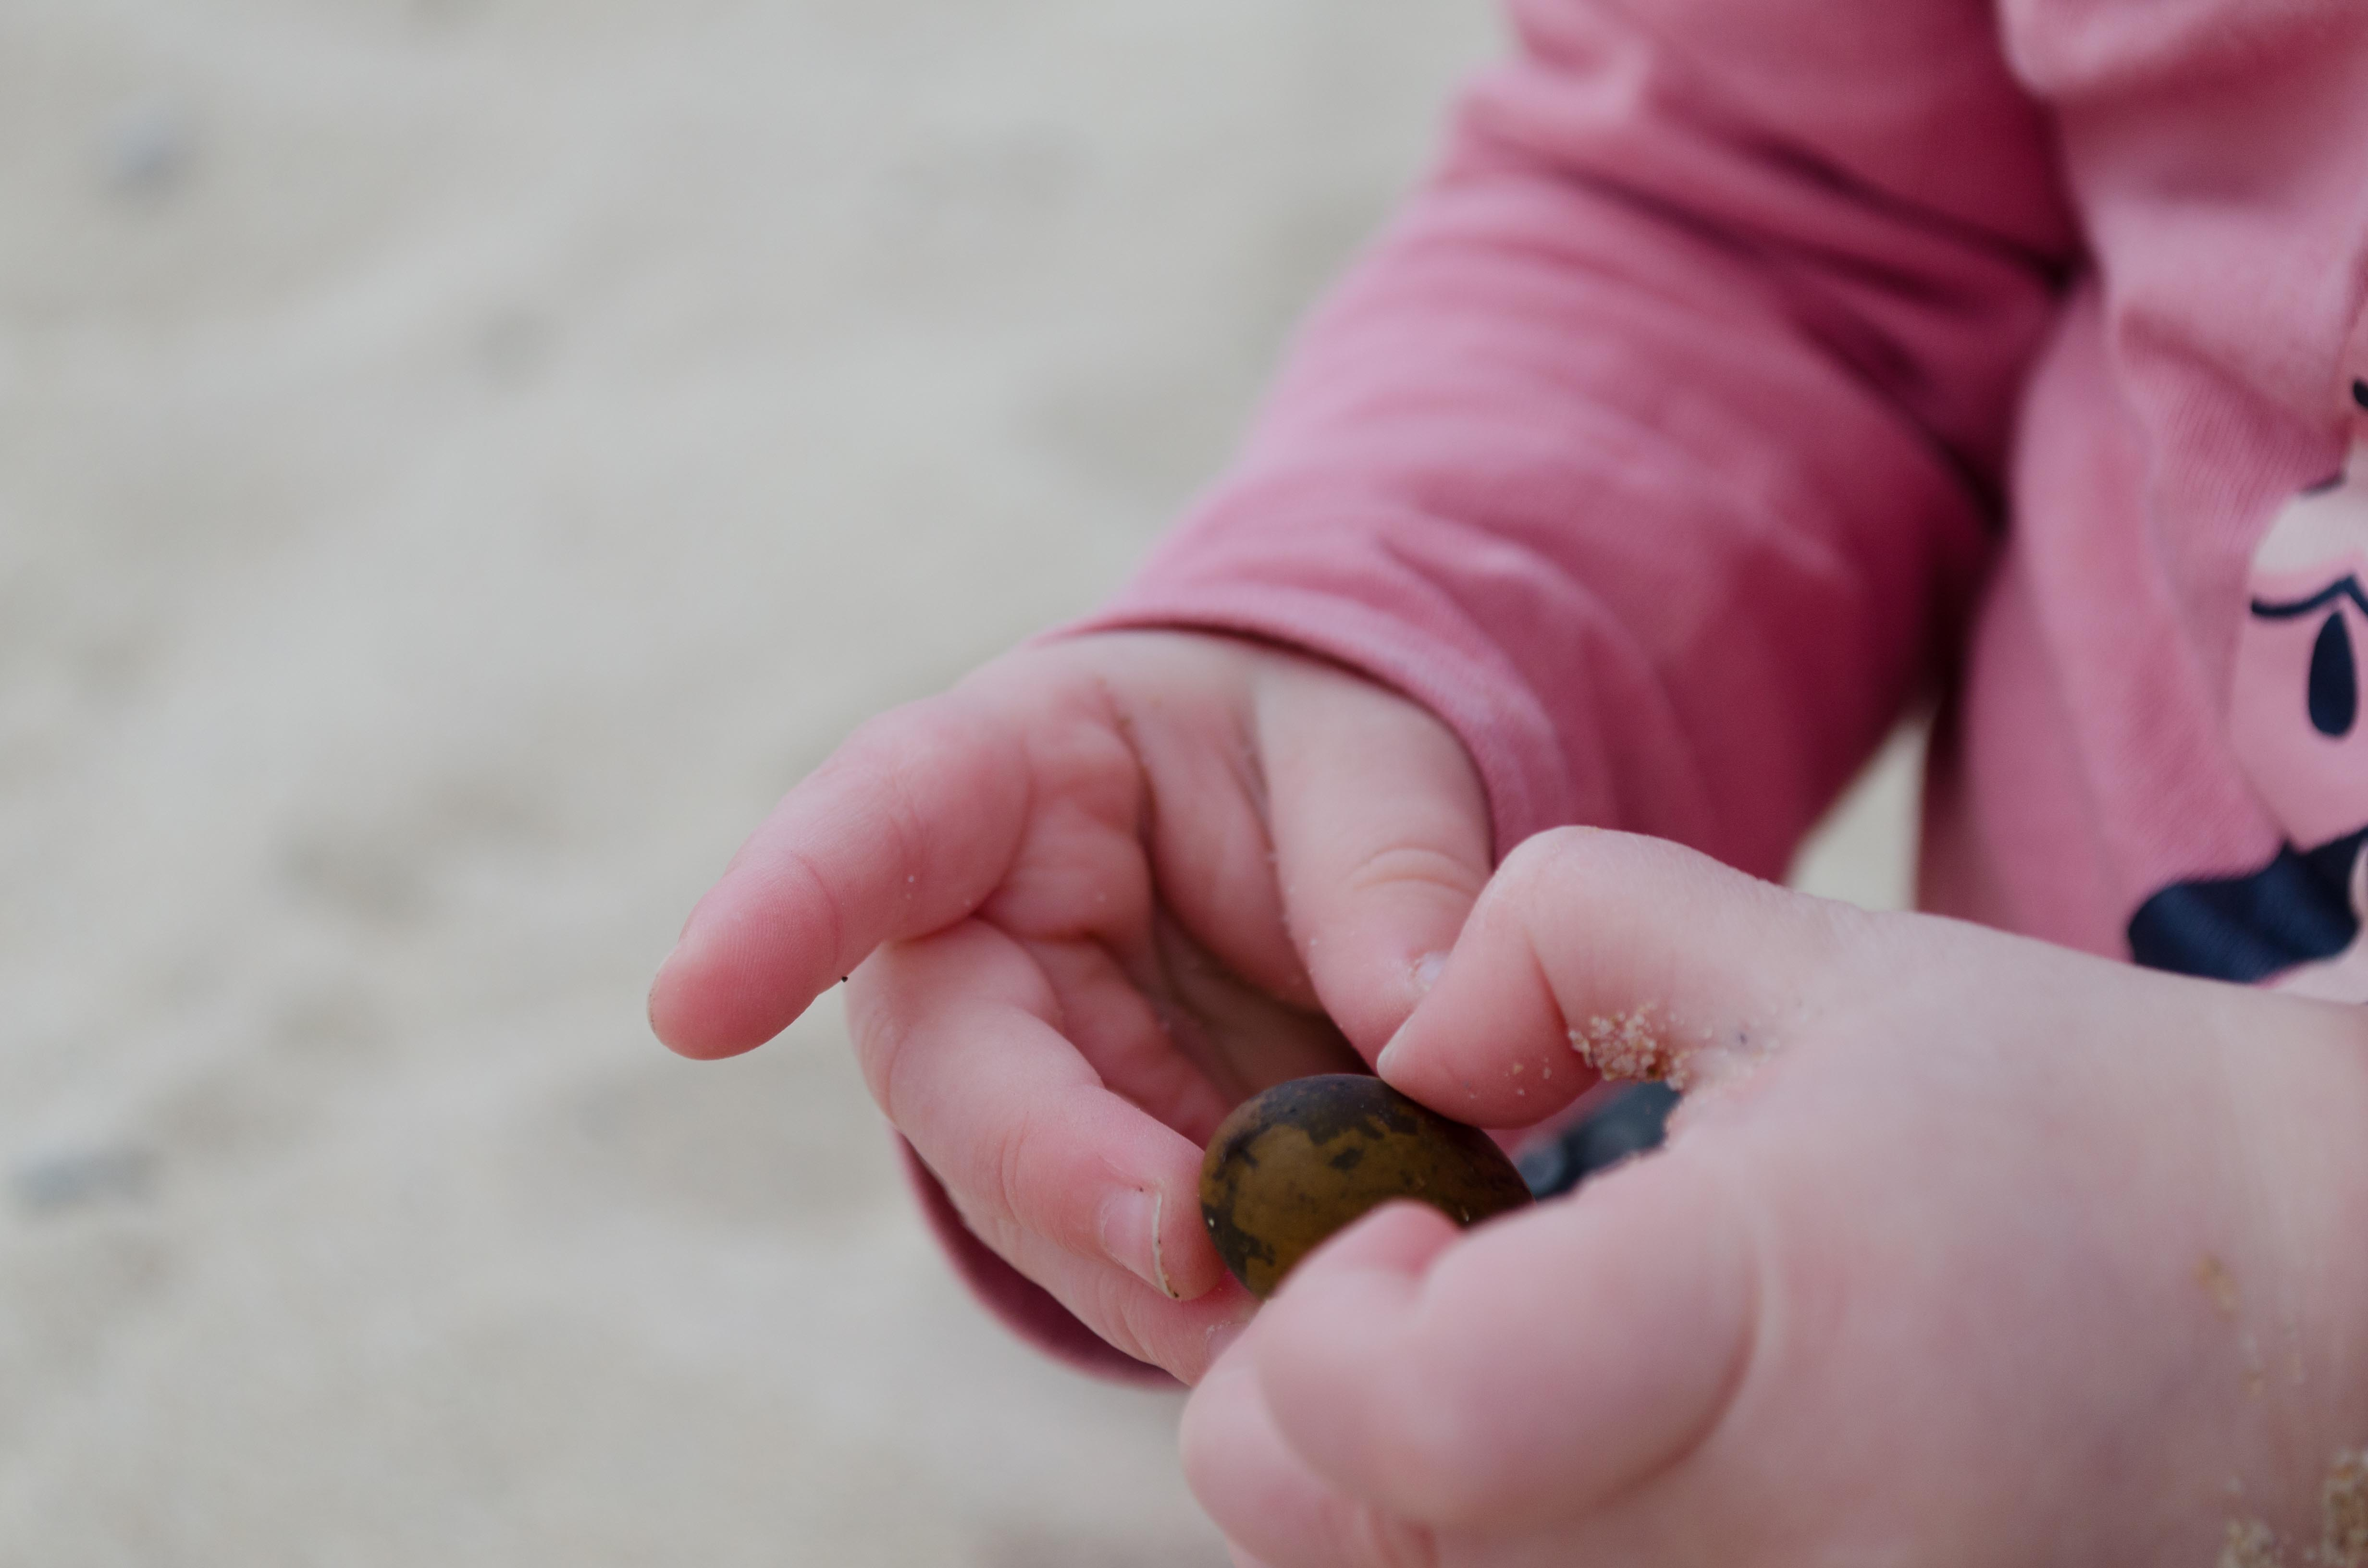 Tiny Fingers and Seaweed, A little taste of Spring